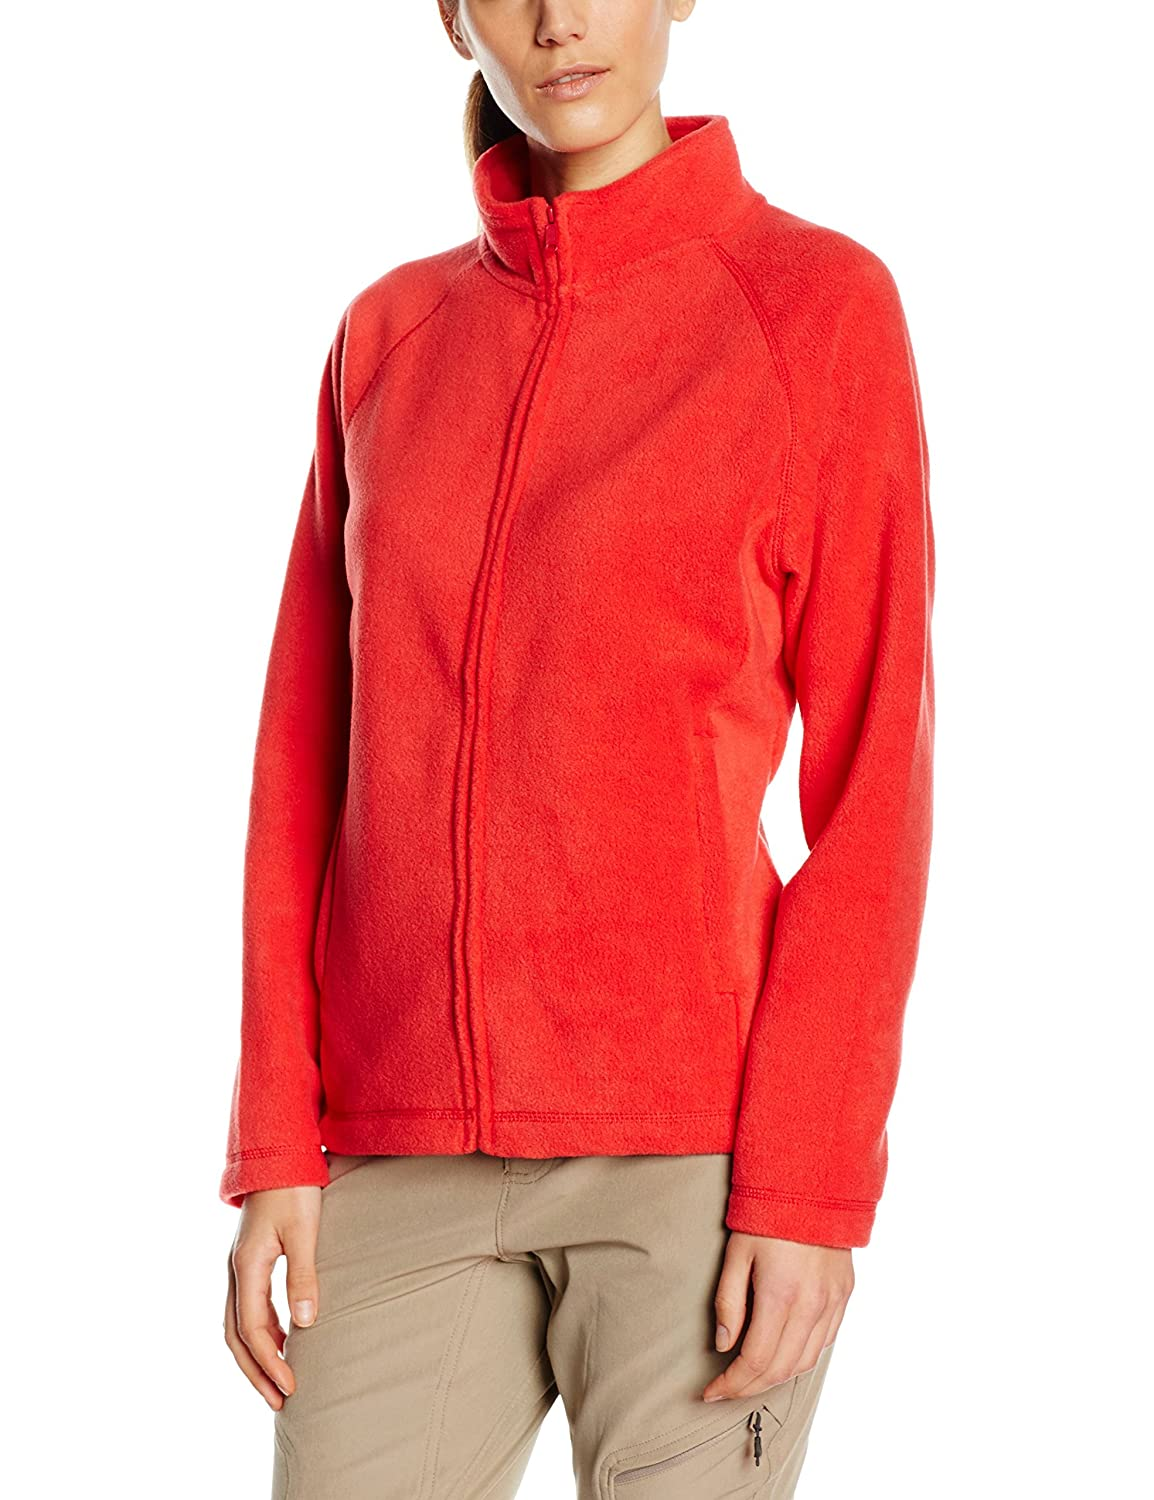 Fruit of the Loom Women's Zip front Fleece 62-066-0